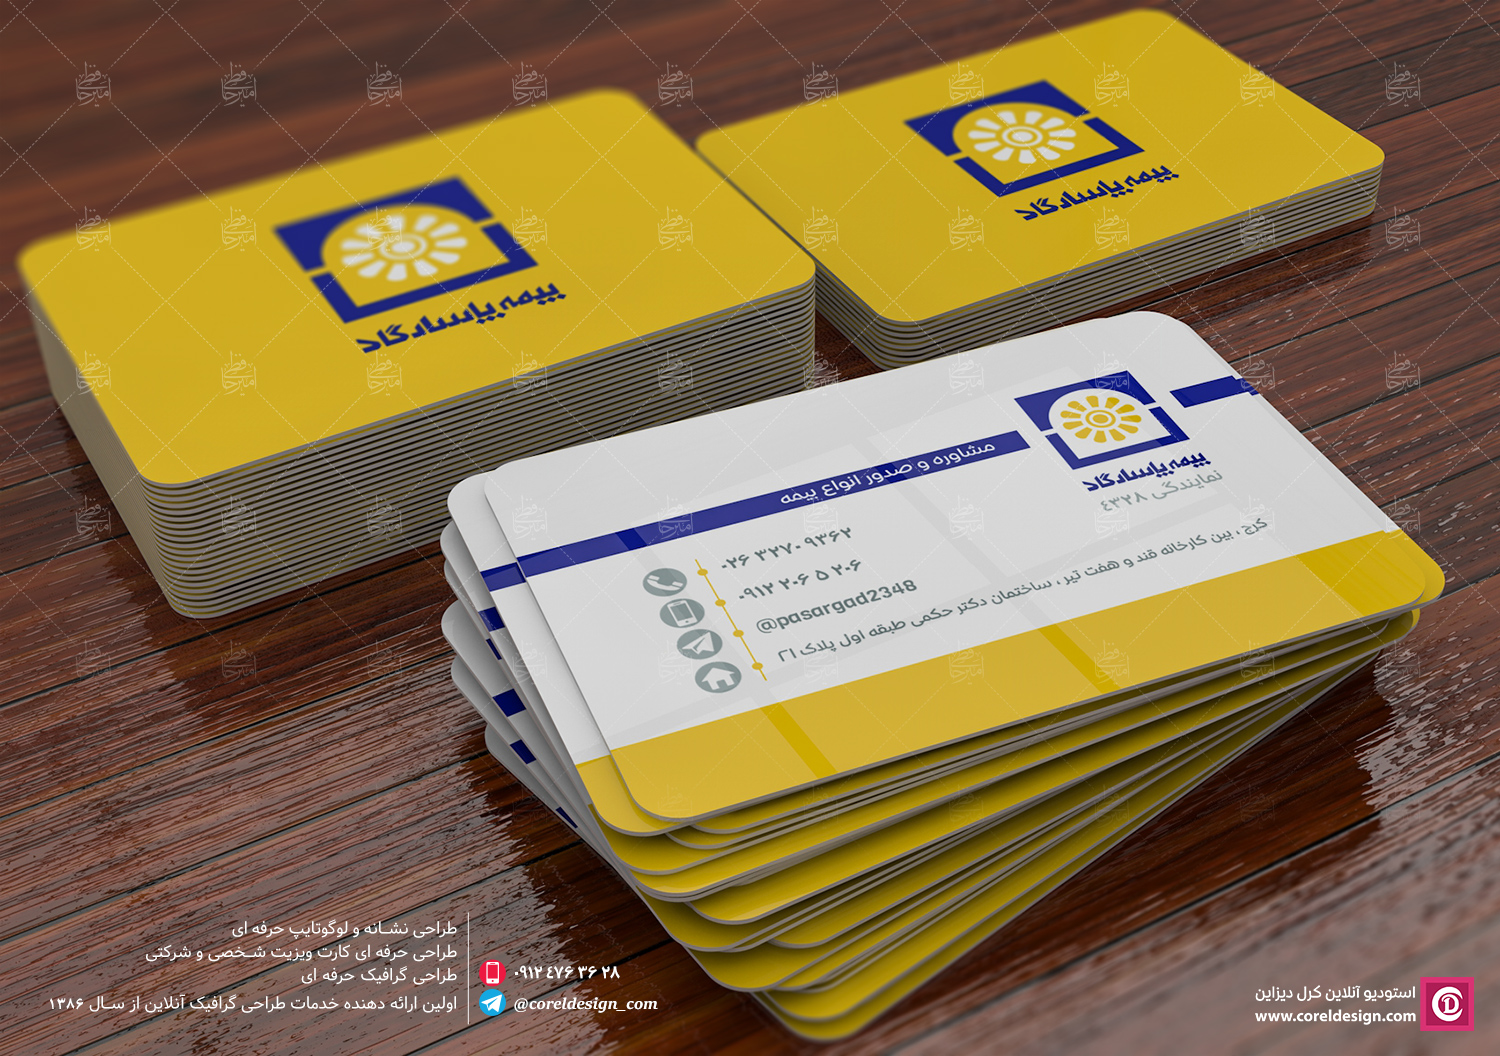 pasargad_busines-card